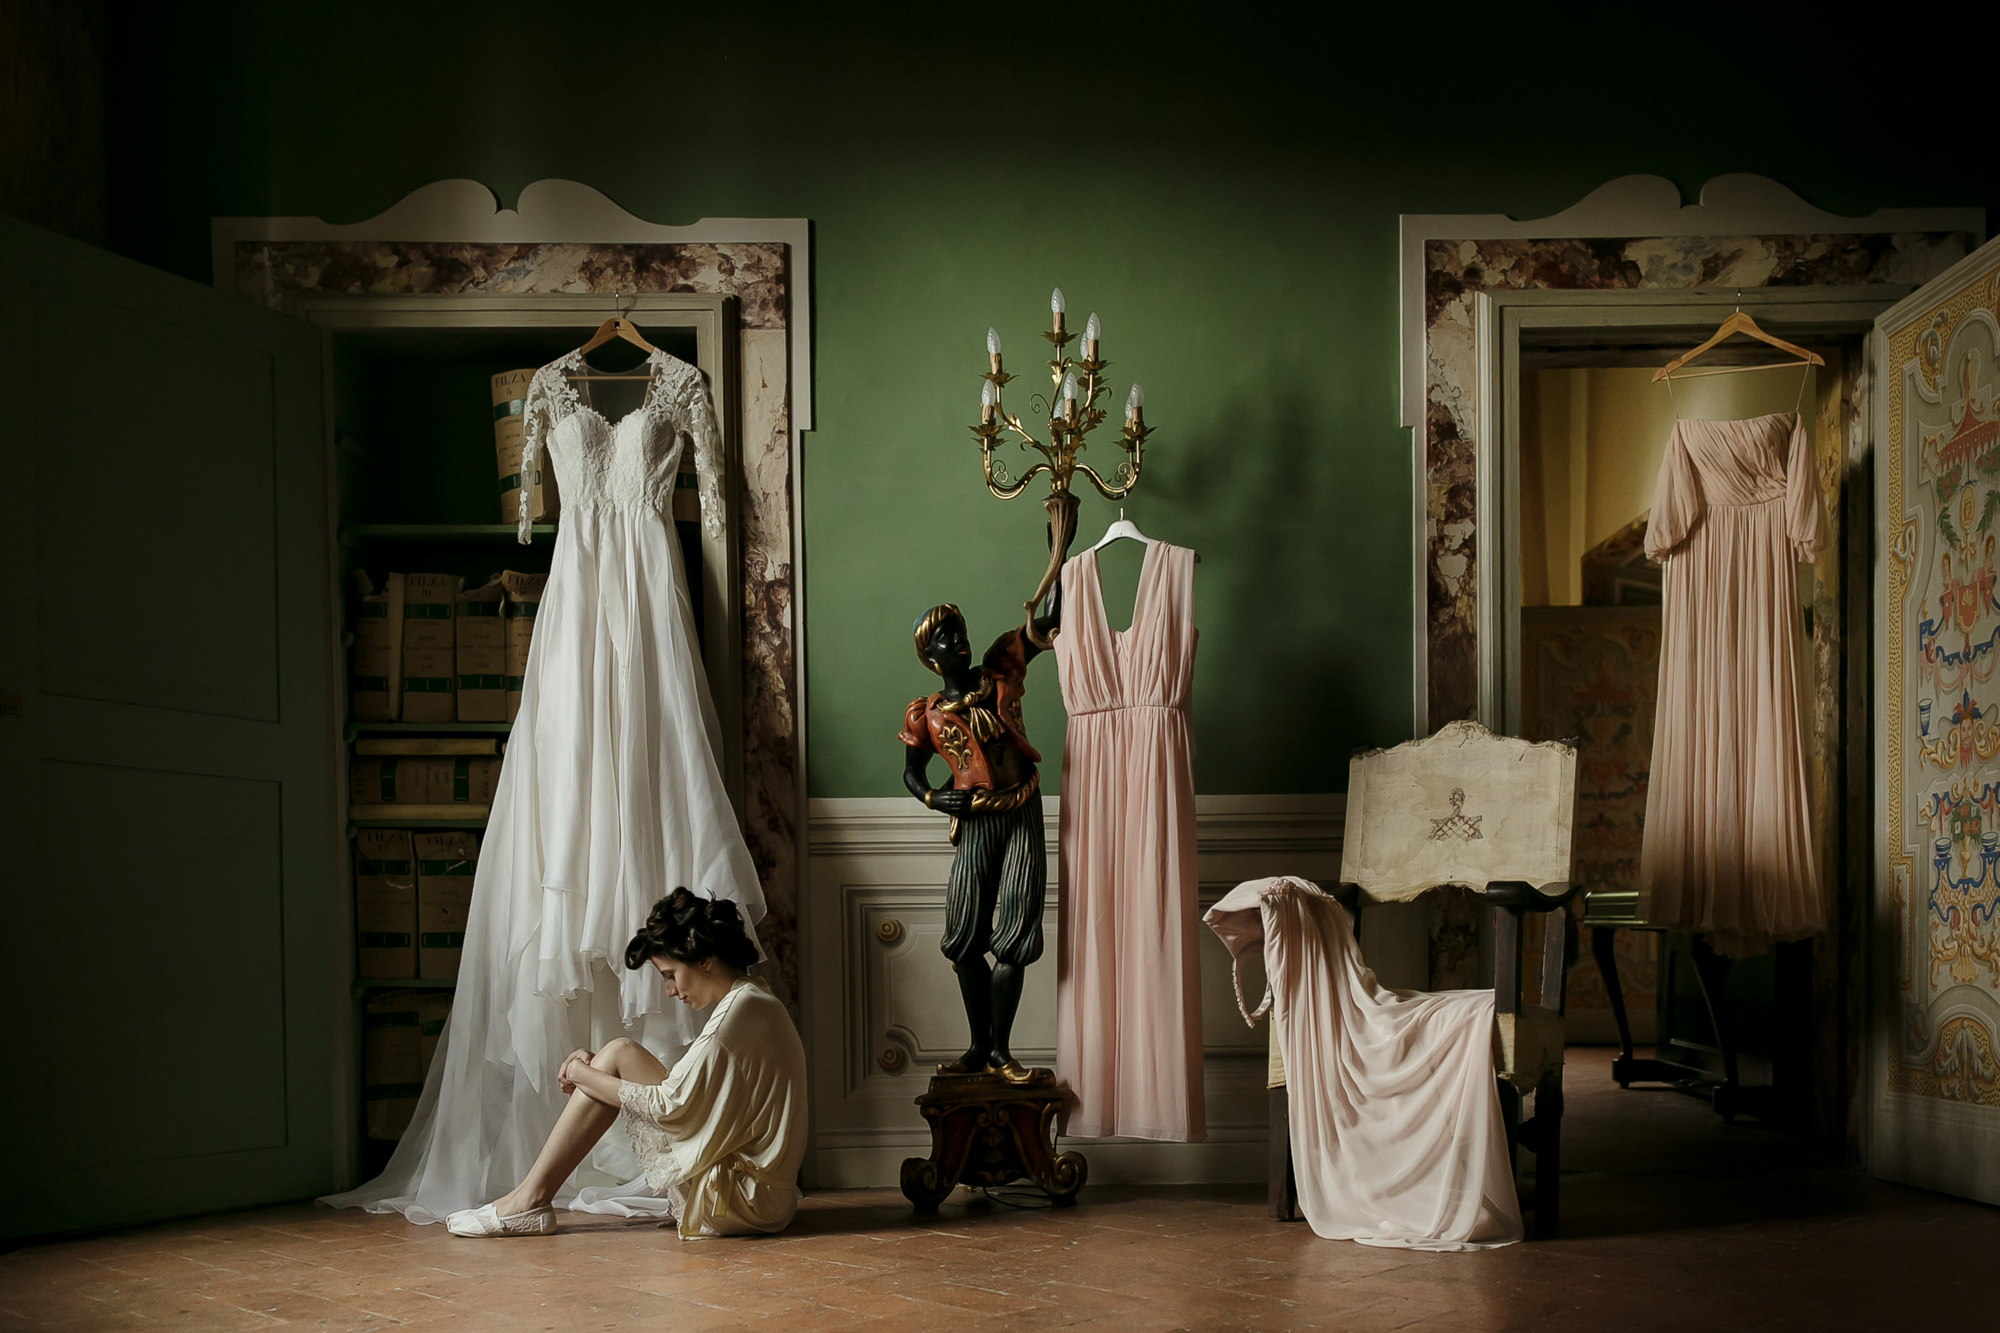 Bride sits on the floor in front of her wedding gowns - photo by David Bastianoni - Italy